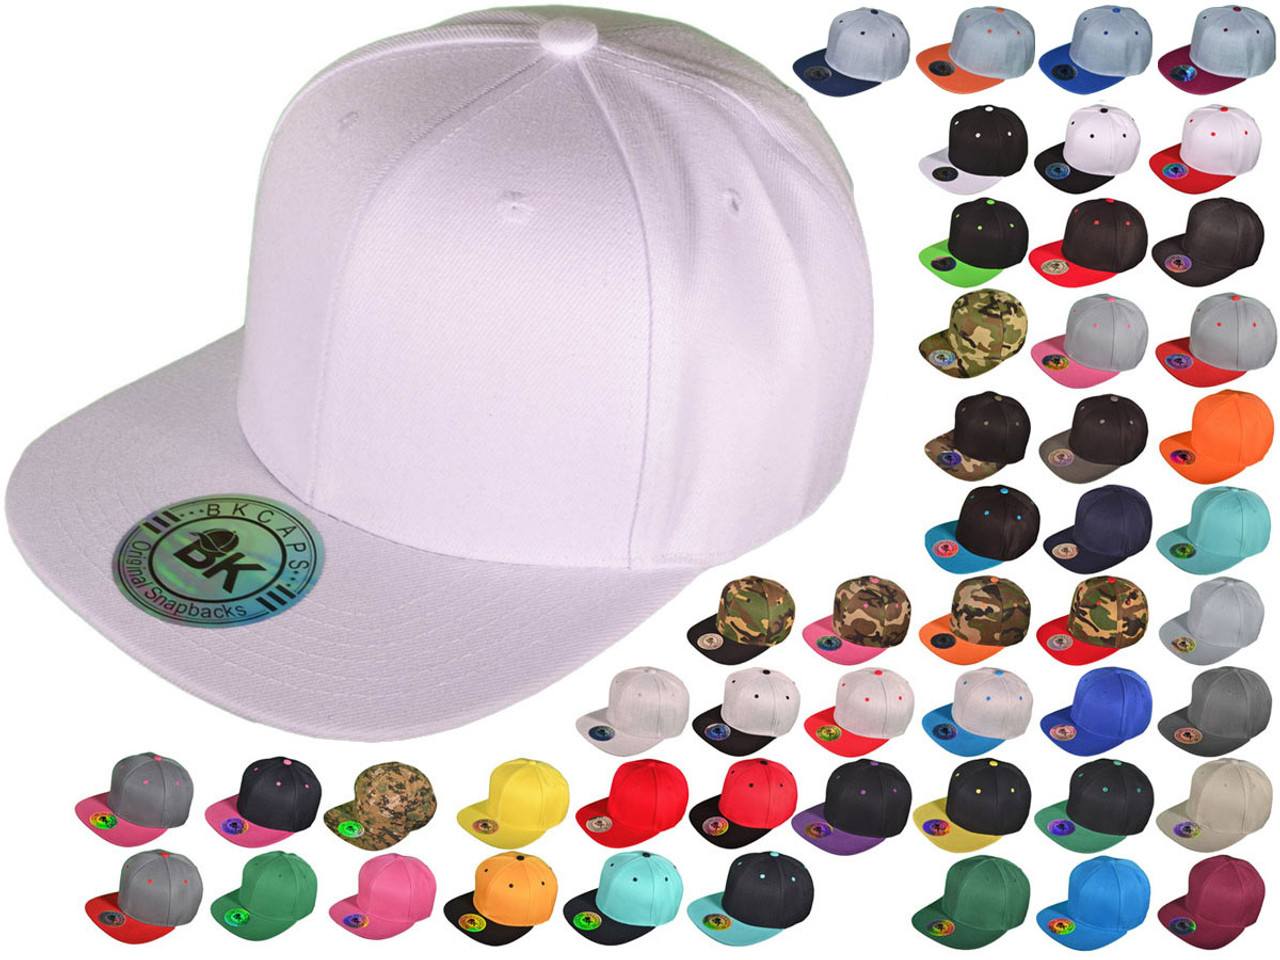 87f868d6 Blank Snapback Hats - BK Caps Flat Bill Plain Vintage Snapbacks with Same  Color Underbill - 3003